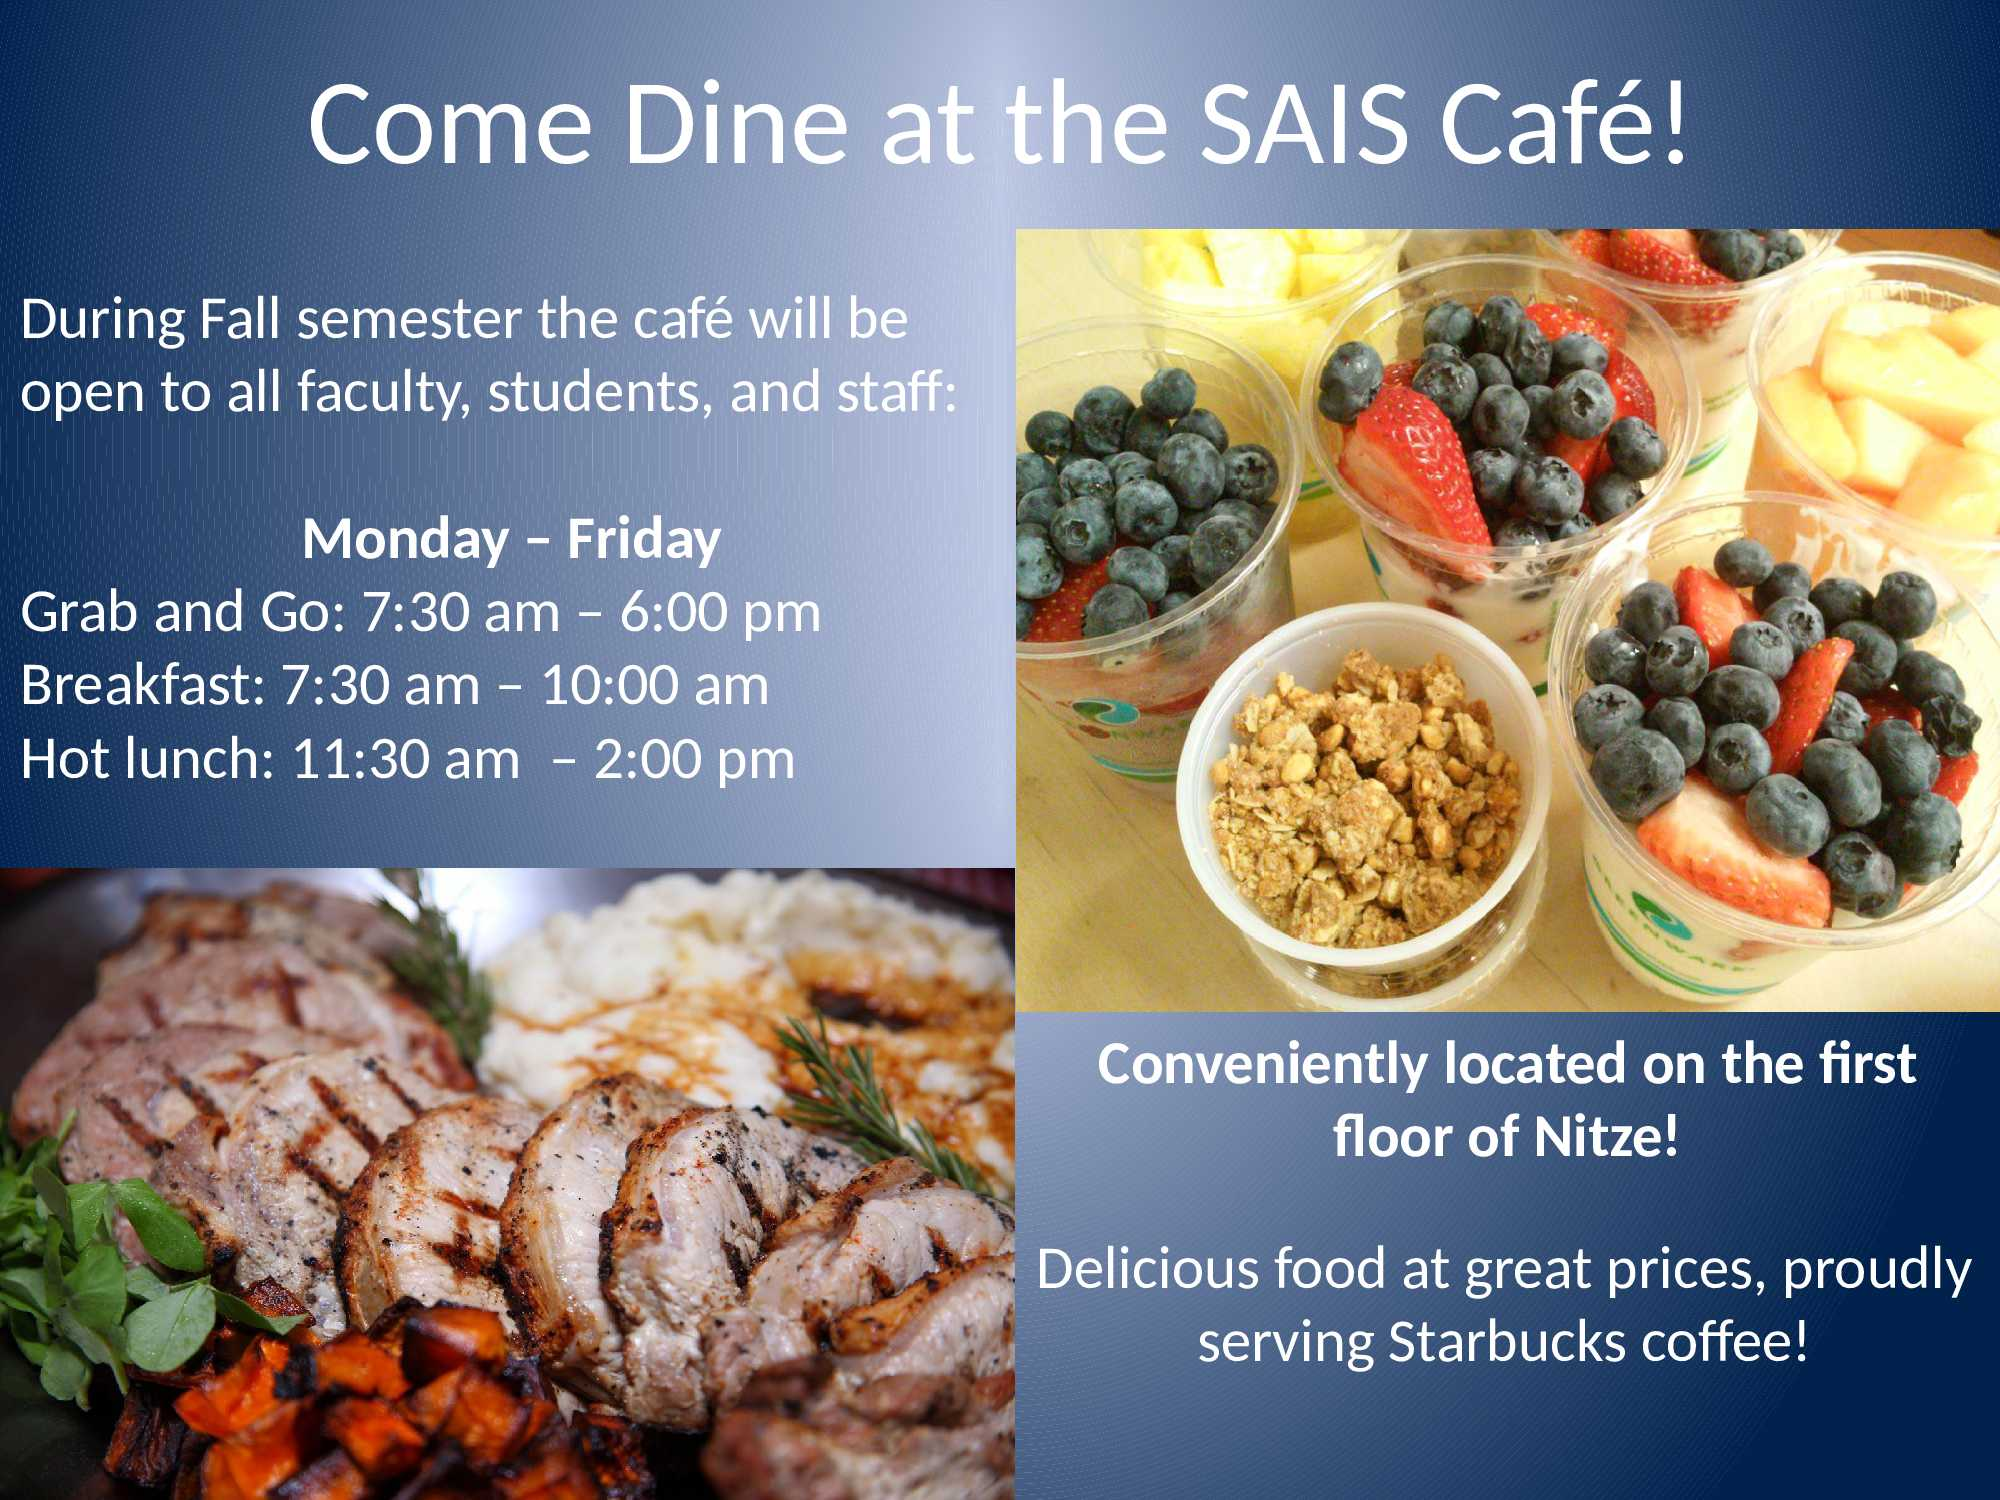 Information regarding SAIS Cafe Fall is as follows Start date is September 01 2016 and End Date is December 31 2016 and File is Browse and Affiliation is Department and File Name is Cafe-Ad-fall_comp.jpg and Panel is Main and Name of Ad/Event is SAIS Cafe Fall and Group Name is SAIS Operations and Name is Victoria Kinzel and Email is vkinzel1@jhu.edu and